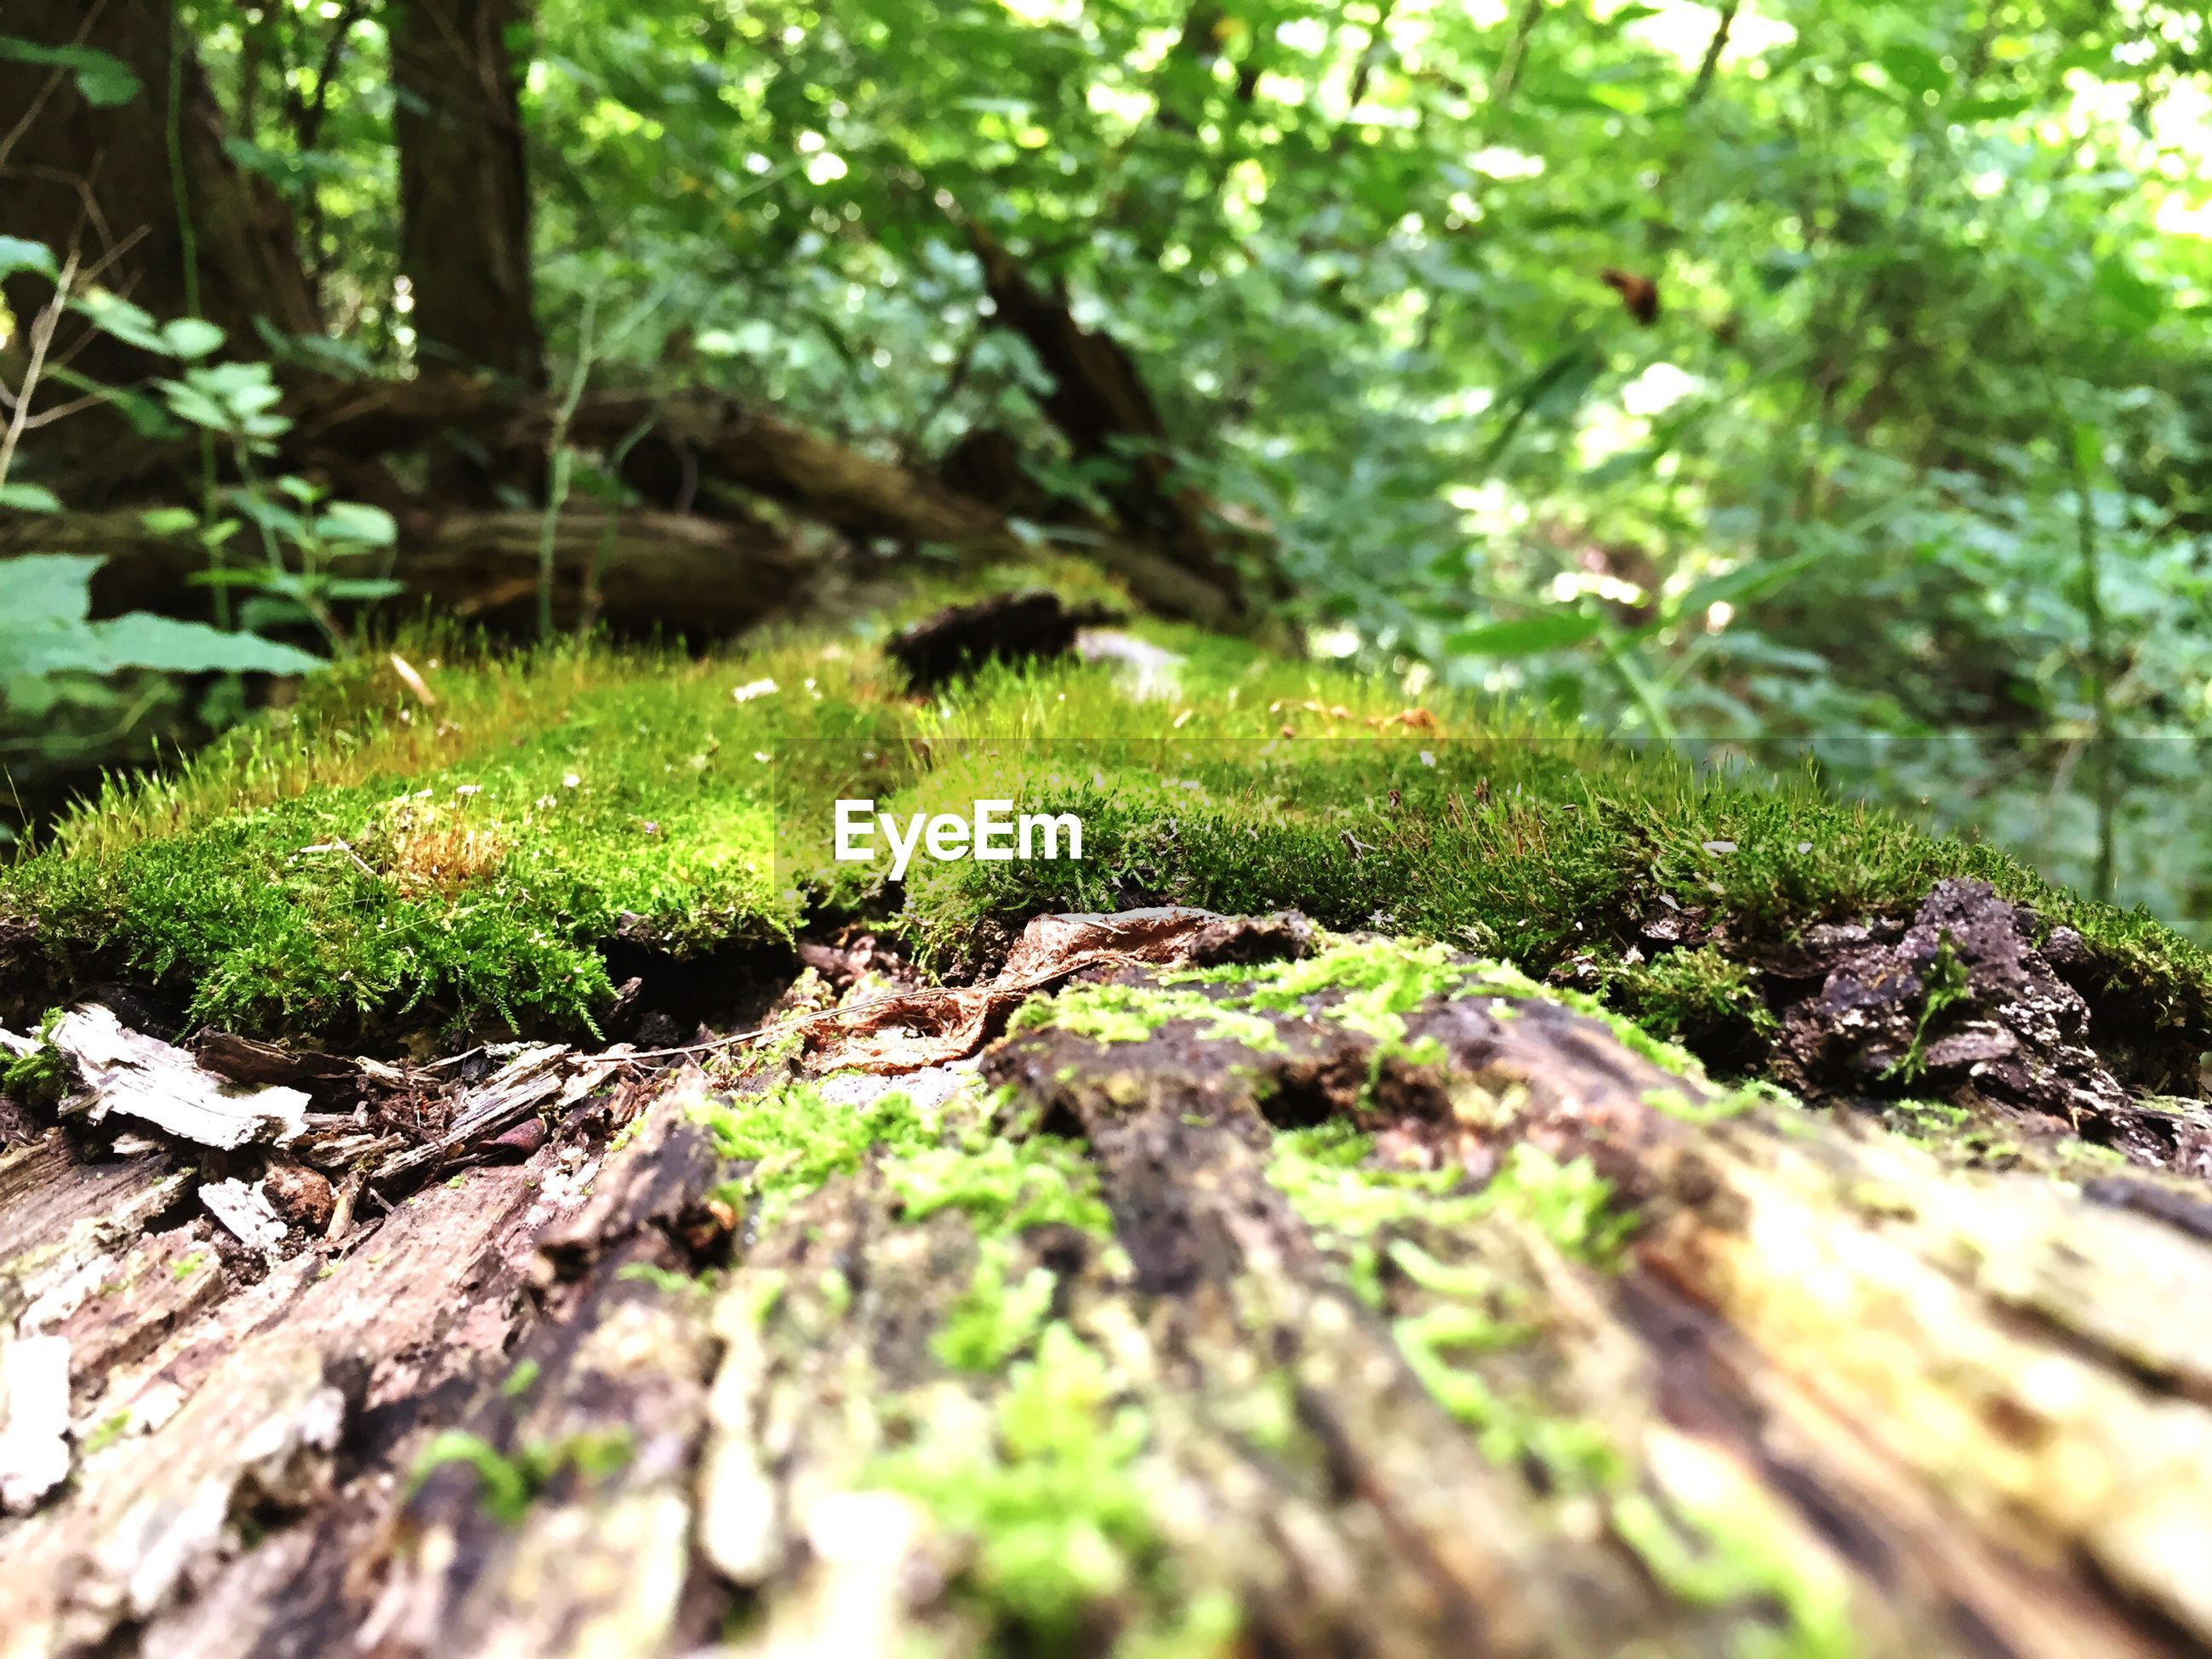 tree, growth, tree trunk, forest, moss, nature, selective focus, green color, plant, tranquility, branch, beauty in nature, close-up, outdoors, no people, rock - object, day, leaf, focus on foreground, growing